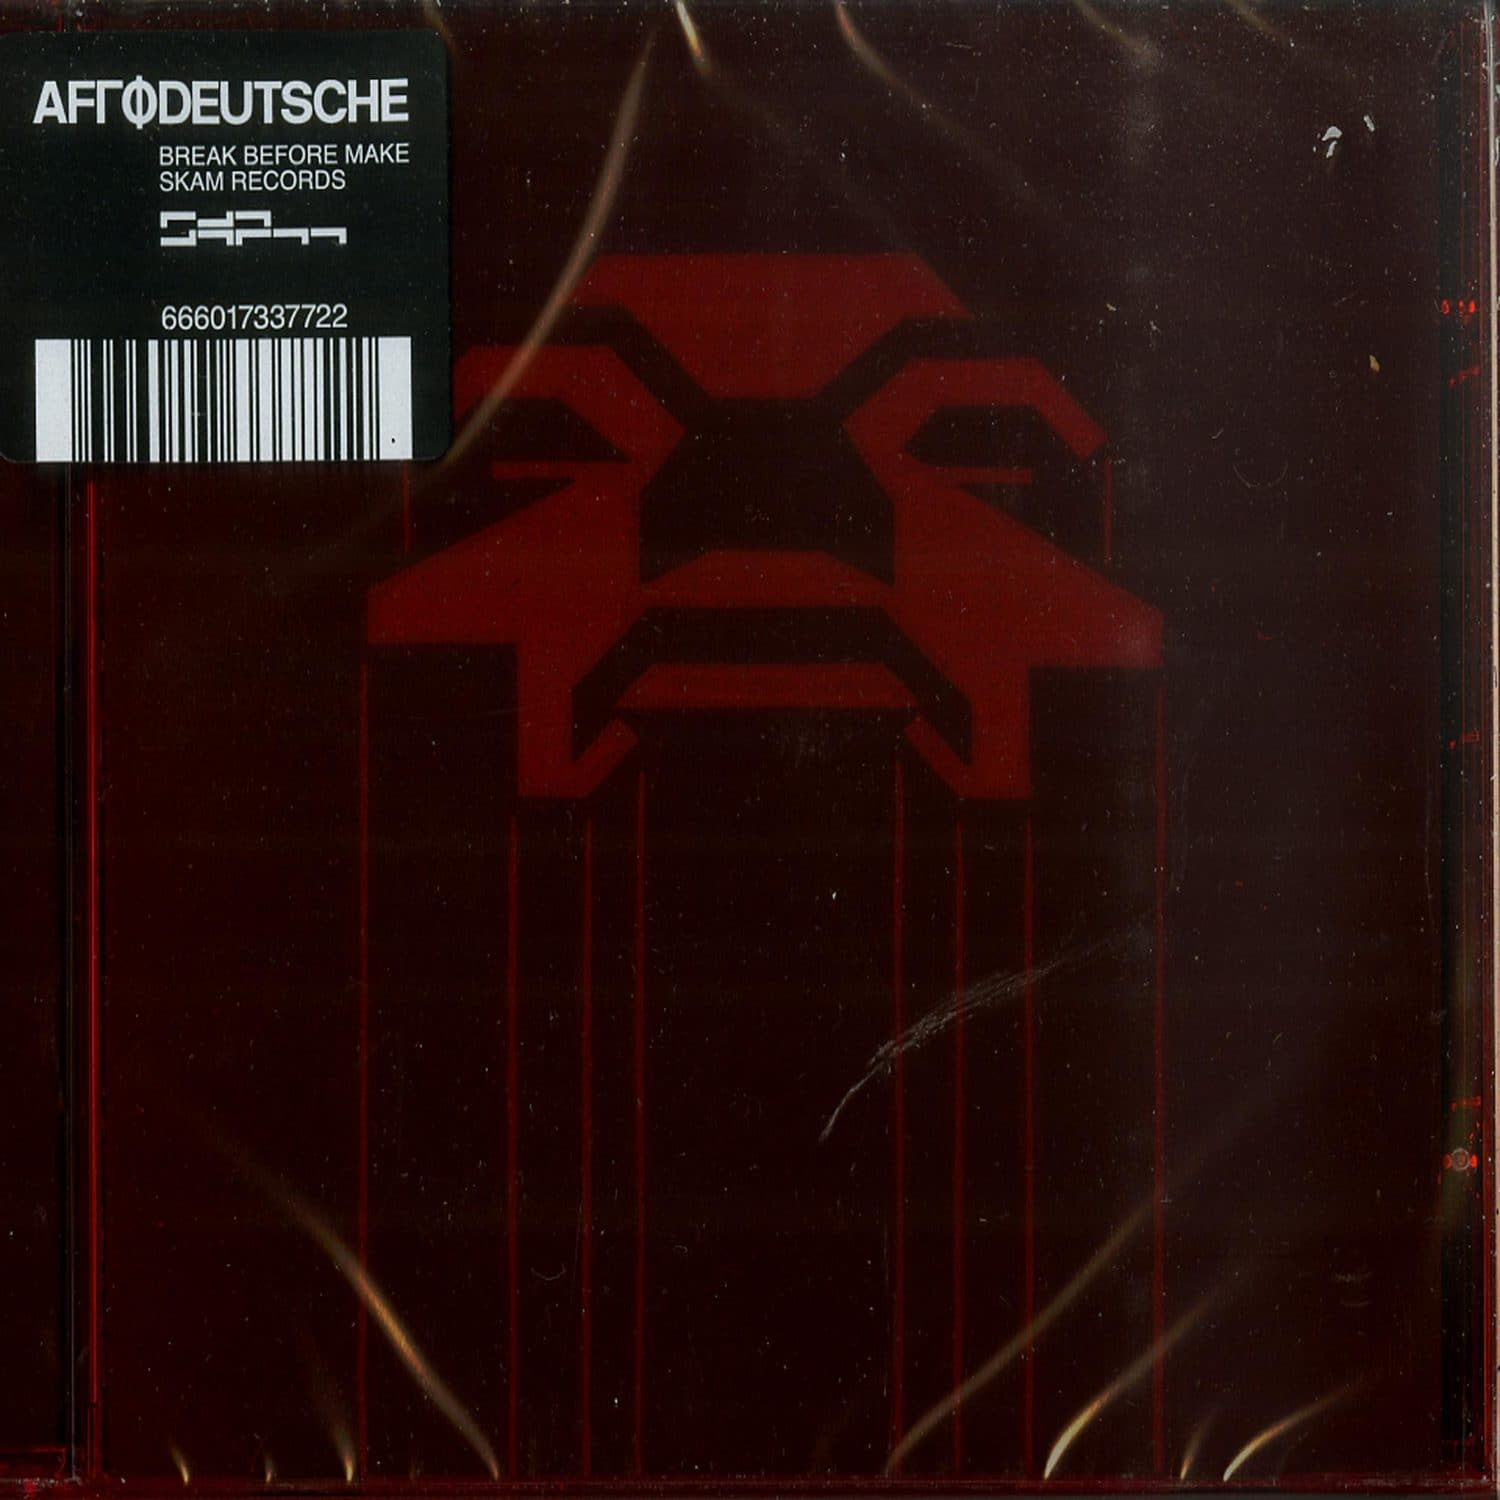 Afrodeutsche - BREAK BEFORE MAKE